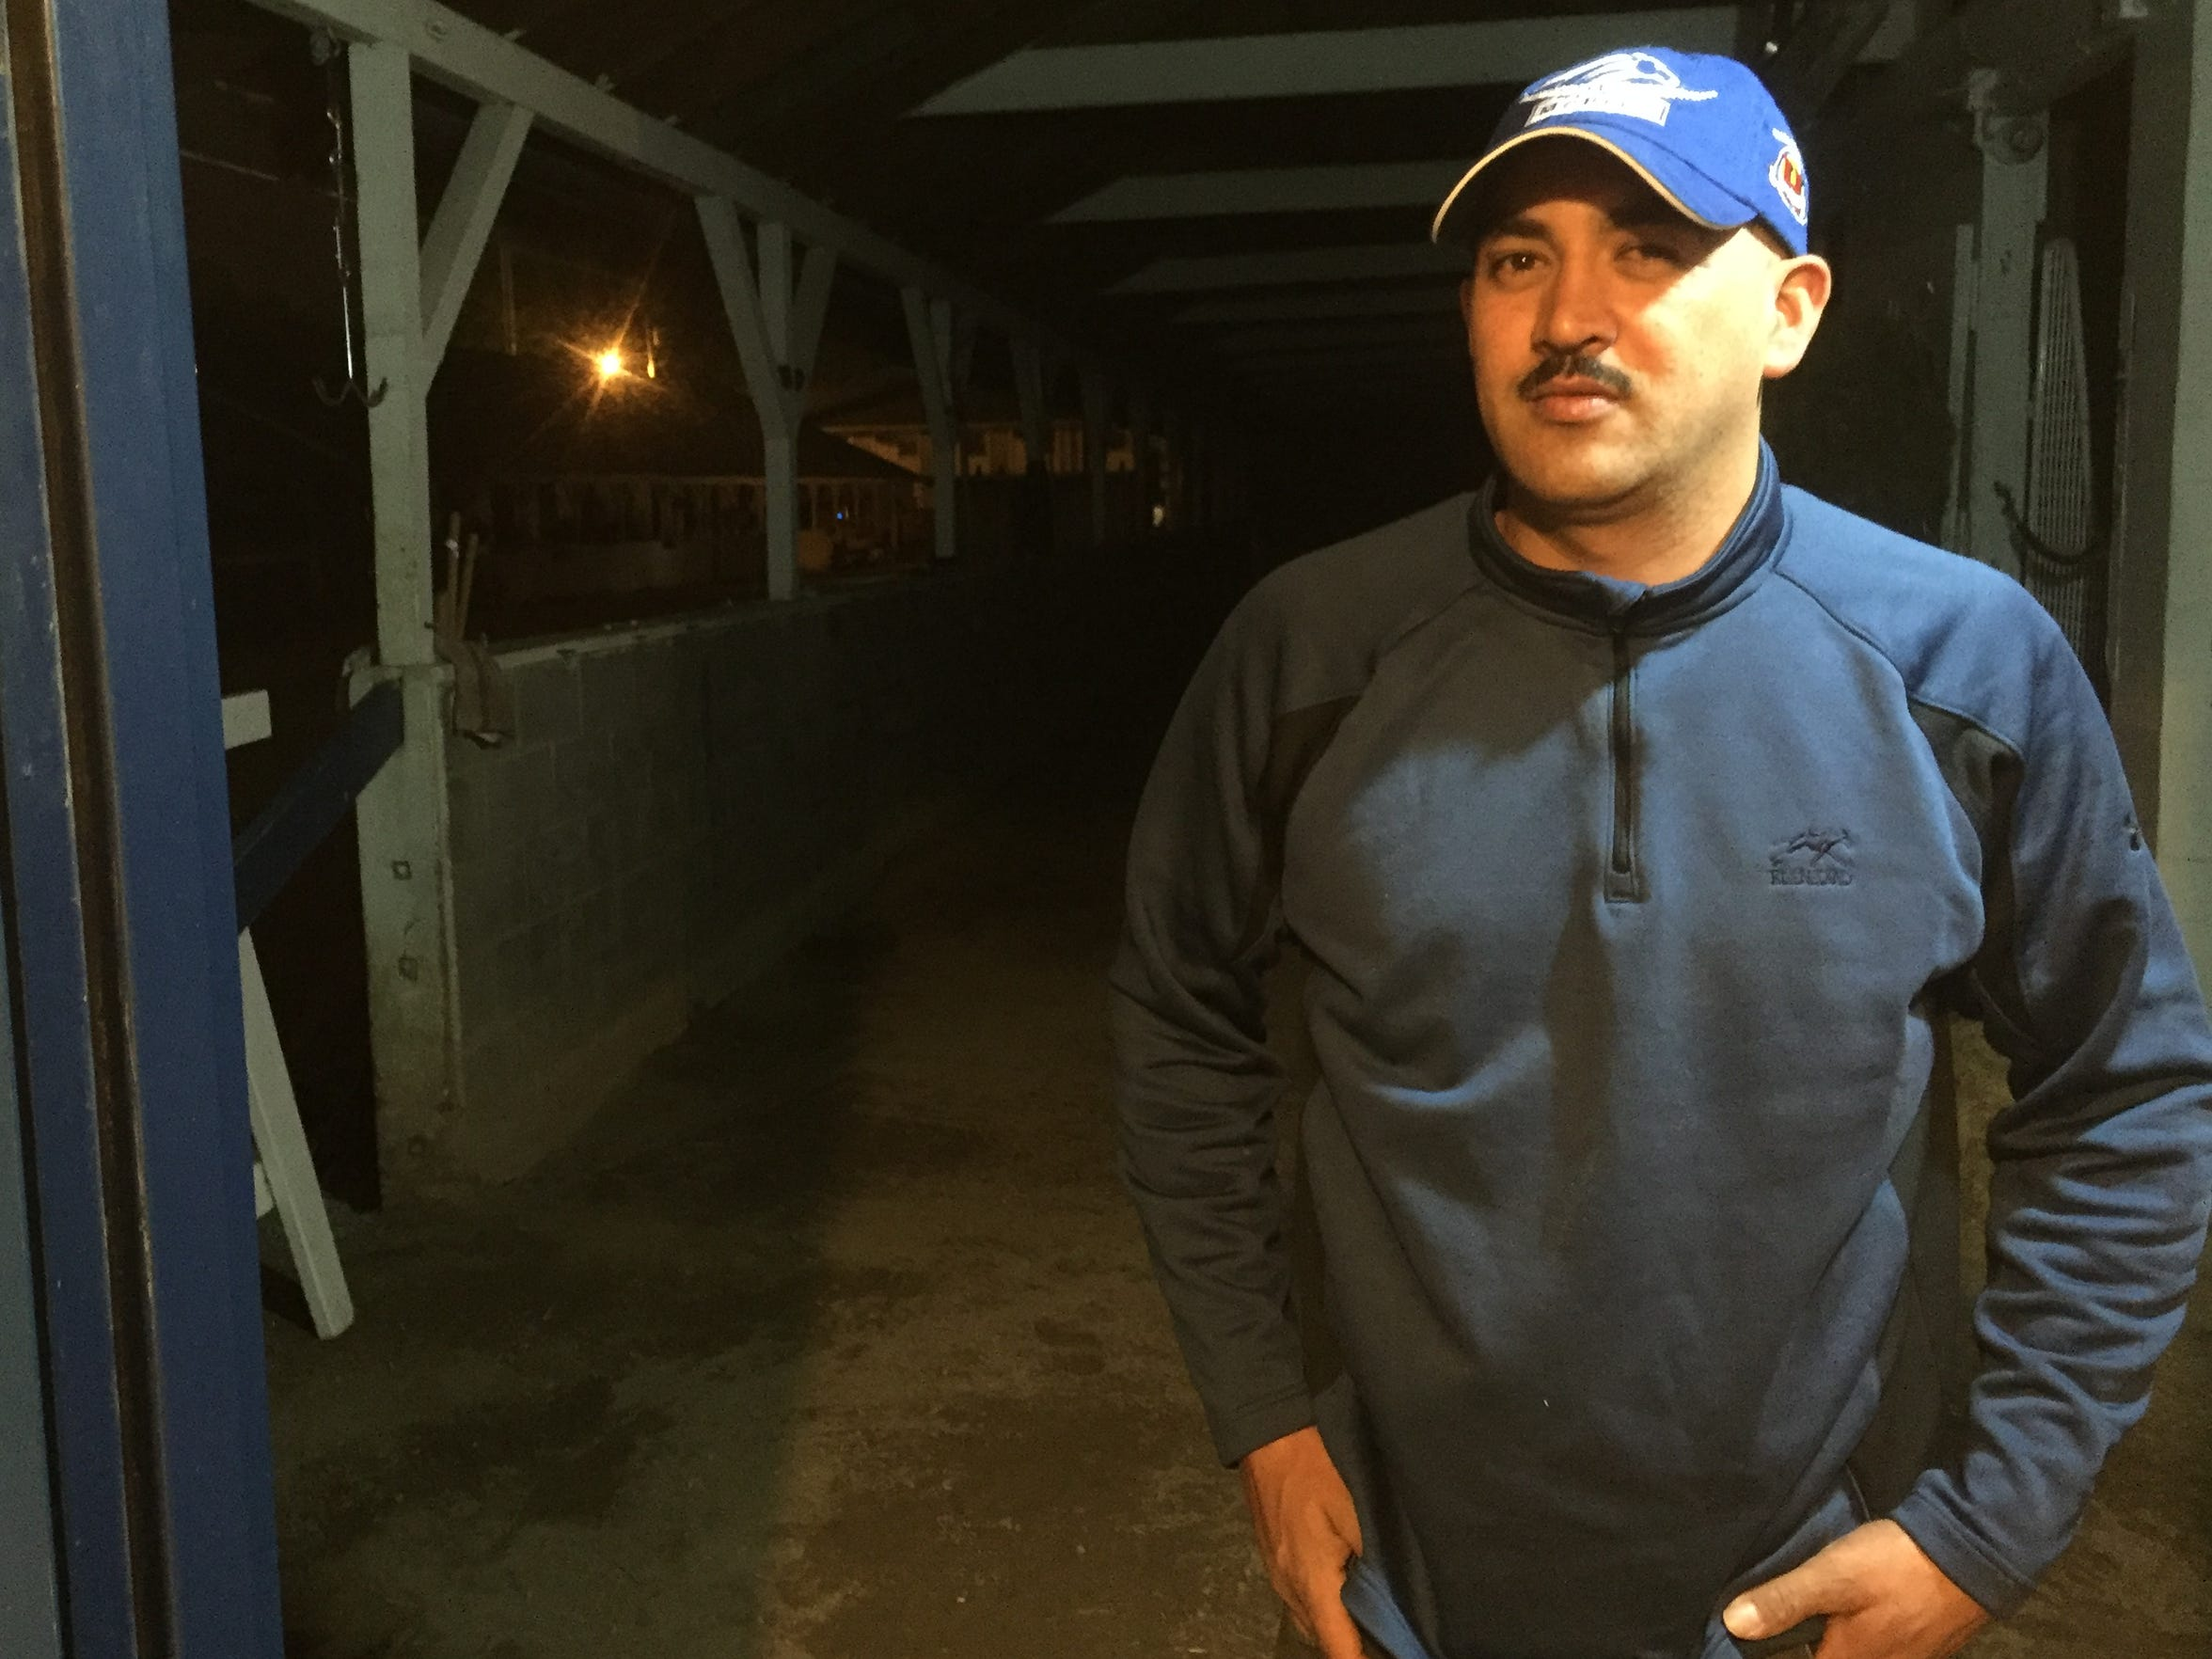 Marcos Abril stands in Barn 6 during the early morning